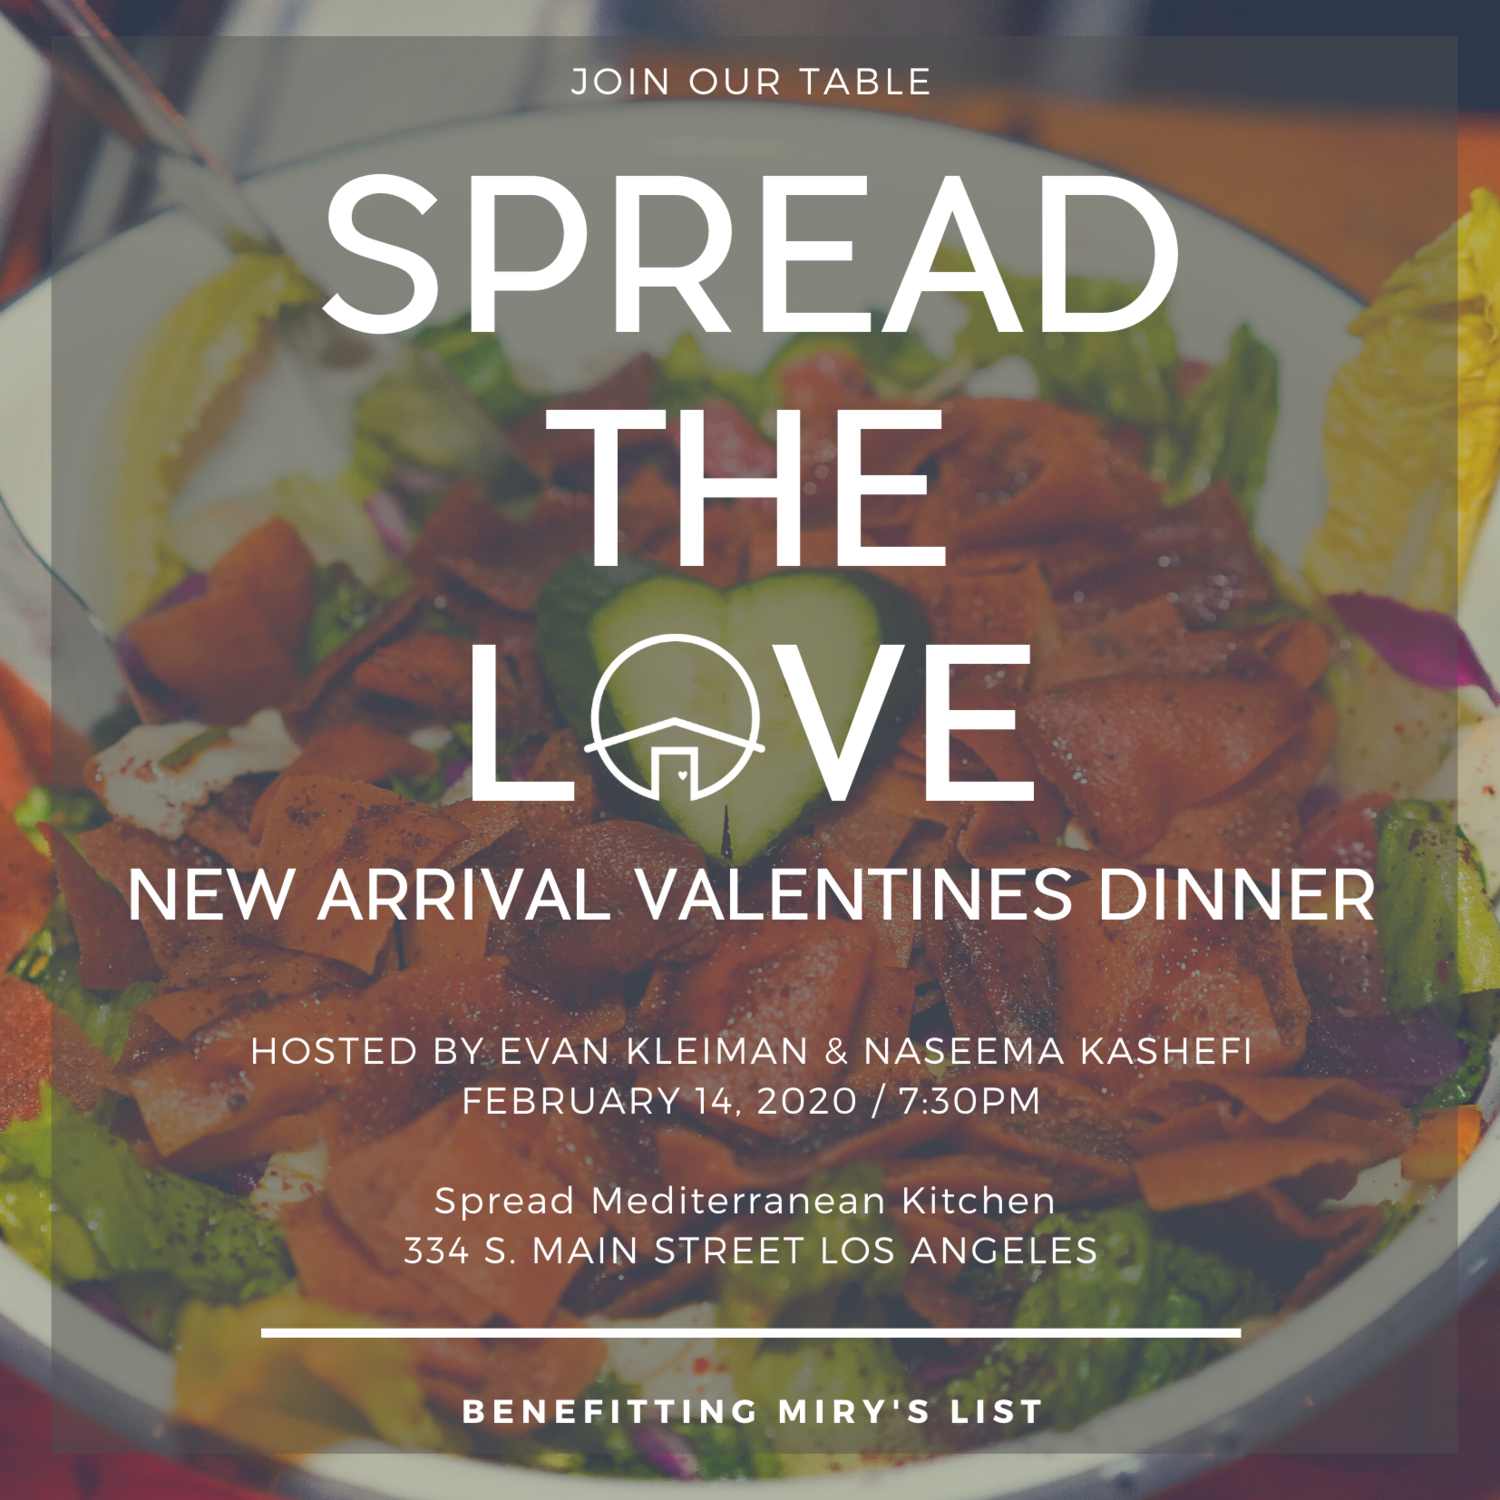 Sold Out Spread The Love New Arrival Valentines Dinner With Miry S List Miry S List